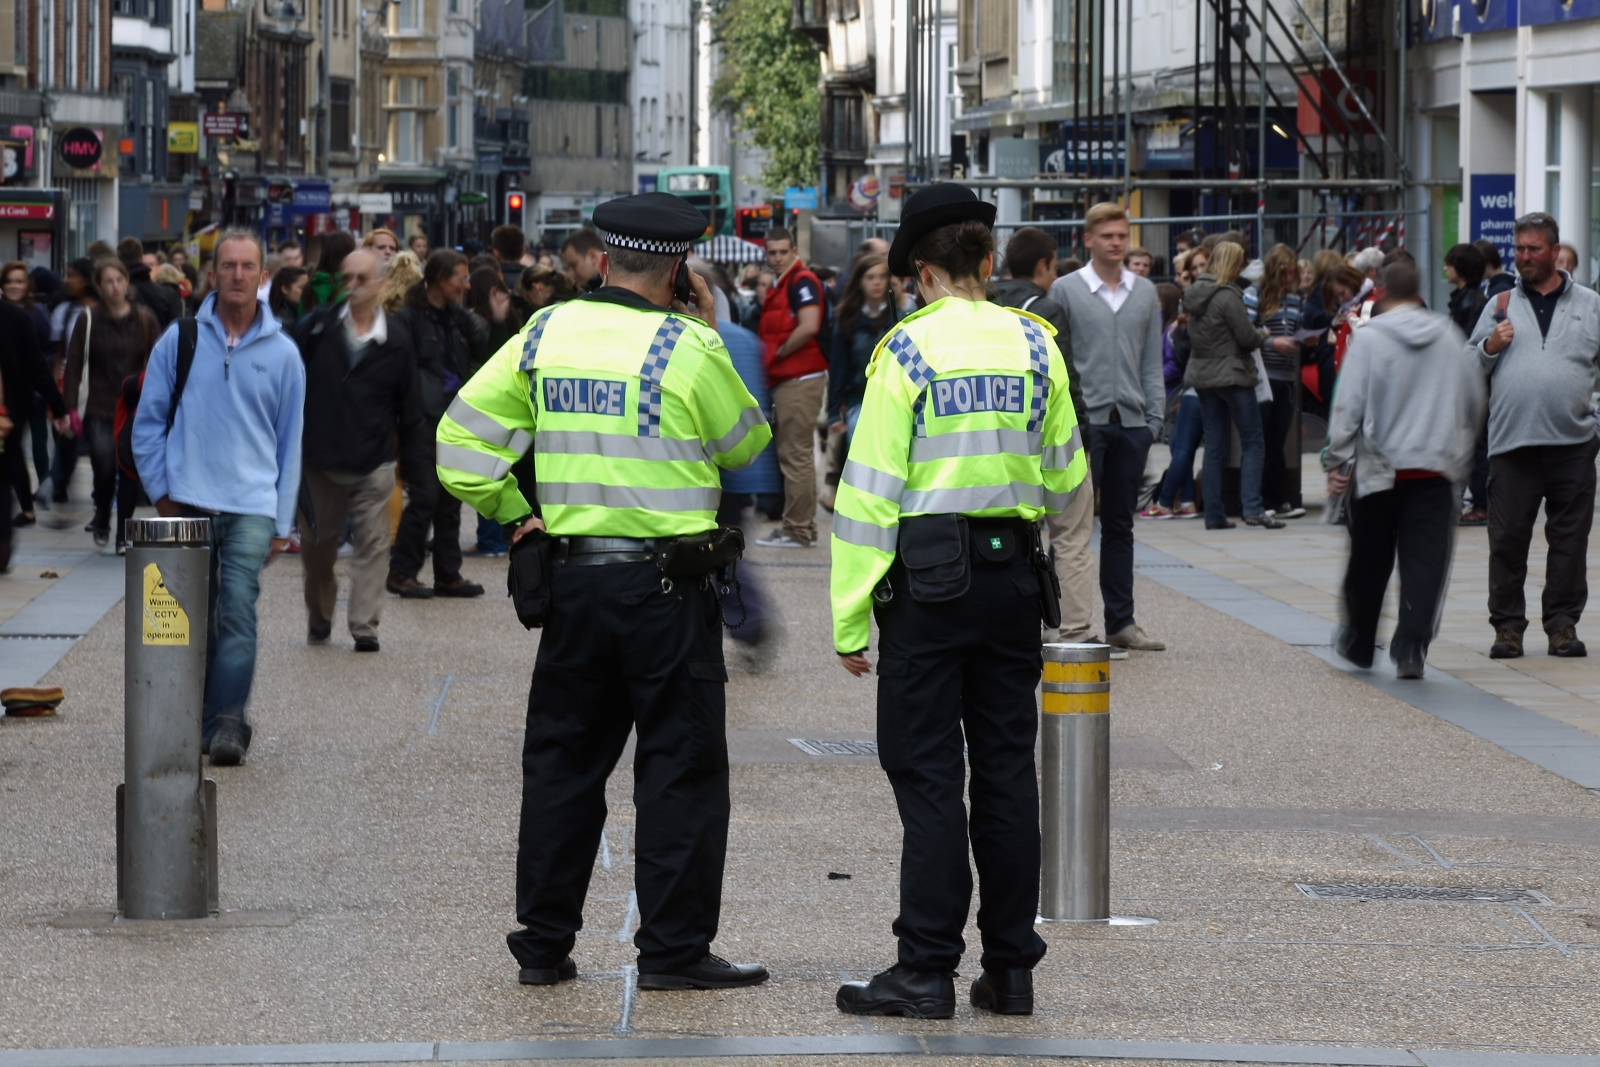 Uk Government Cutting Billions From Police Funding Without